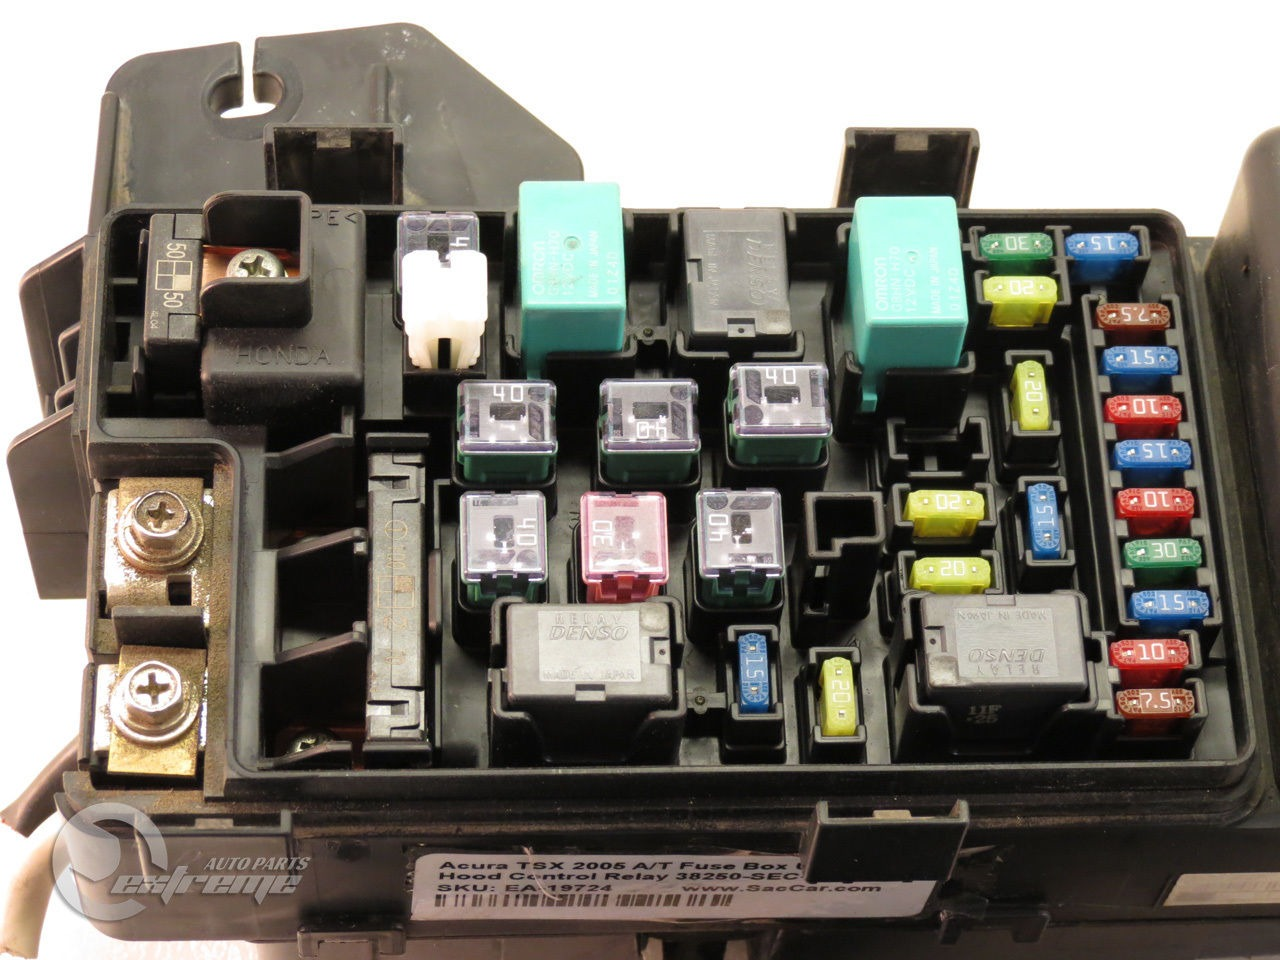 38250 sec a02 acura tsx 2005 a t fuse box under hood control relay 38250 sec a02 2 acura tsx 2005 a t fuse box under hood control relay 38250 sec a02 2009 acura tsx fuse box diagram at fashall.co